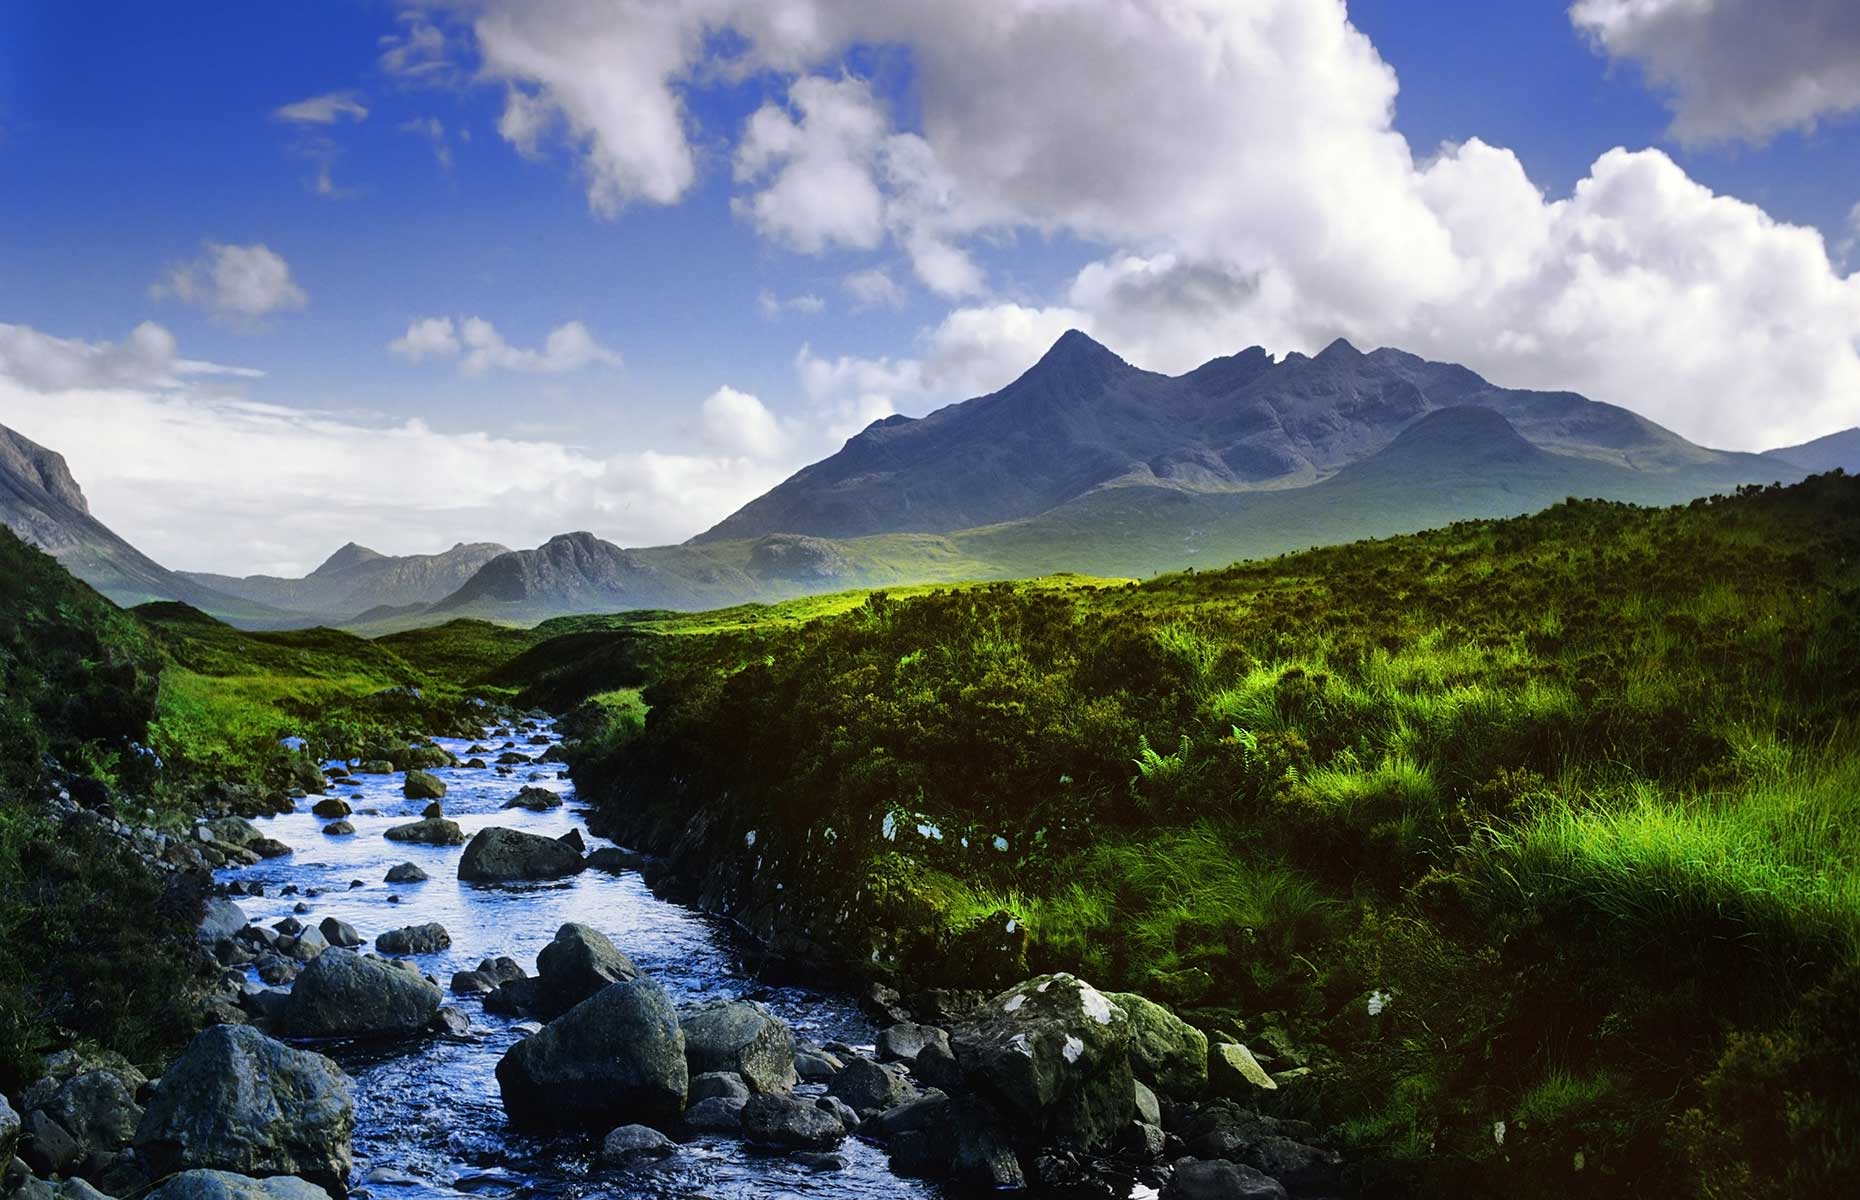 Black Cuillin Mountains, Skye, Scotland (Image: David Hughes/Shutterstock)